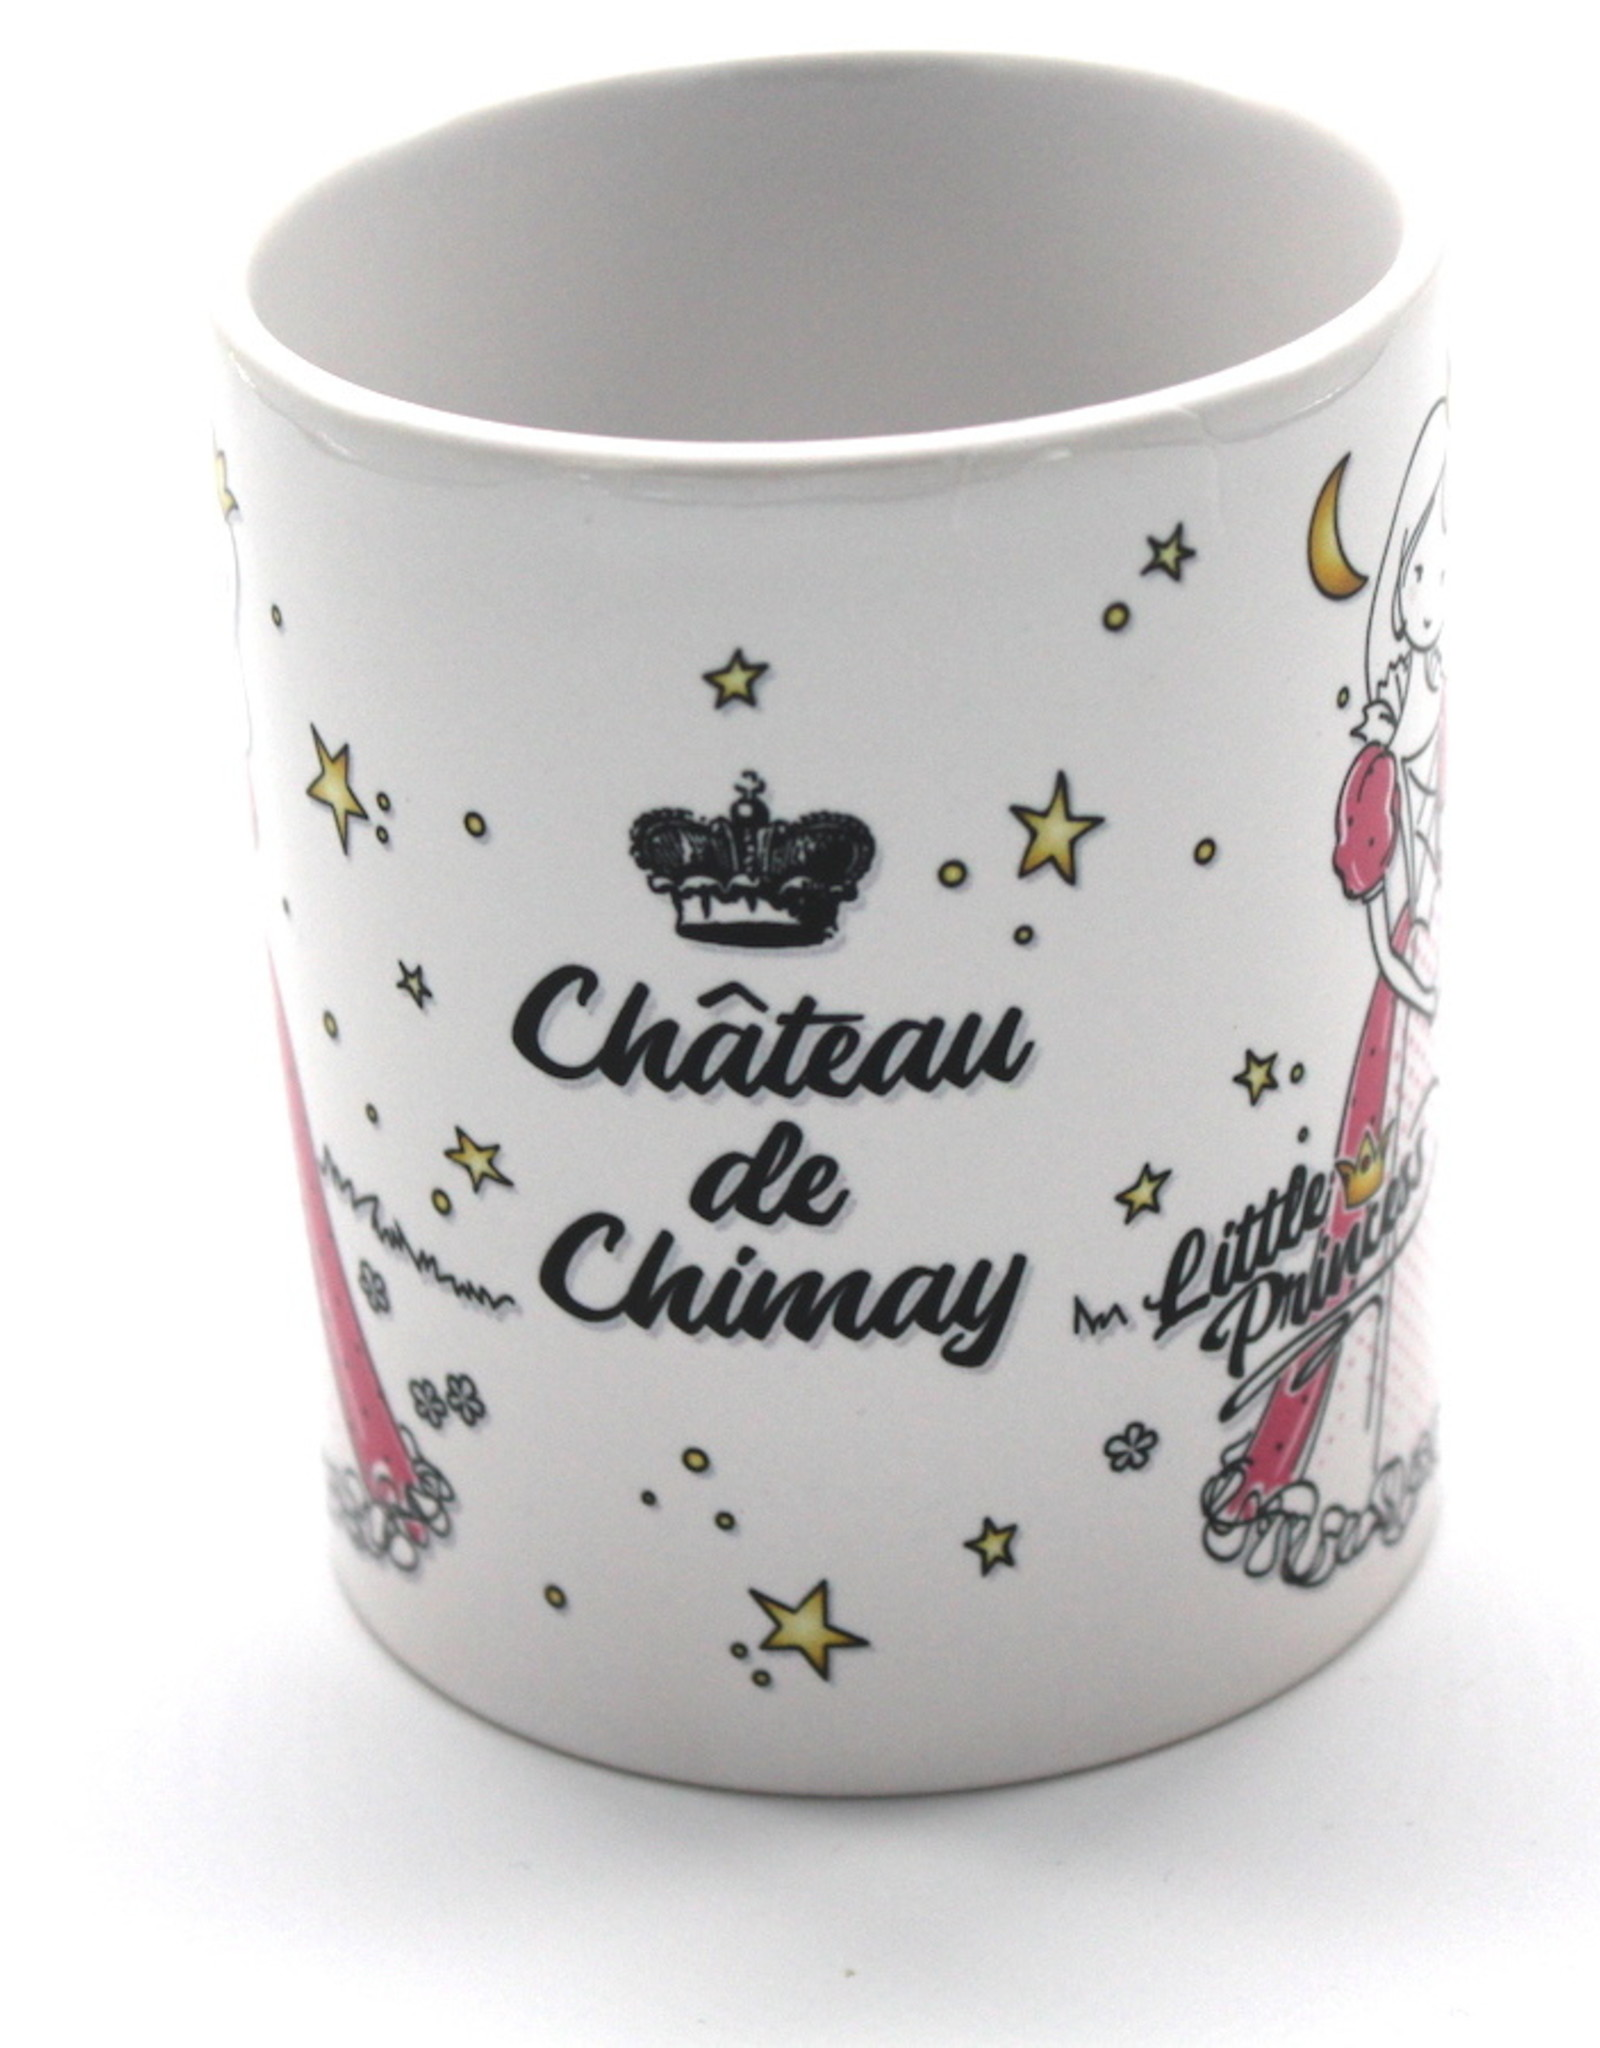 Château de Chimay Mug Little Princess Chateau de Chimay